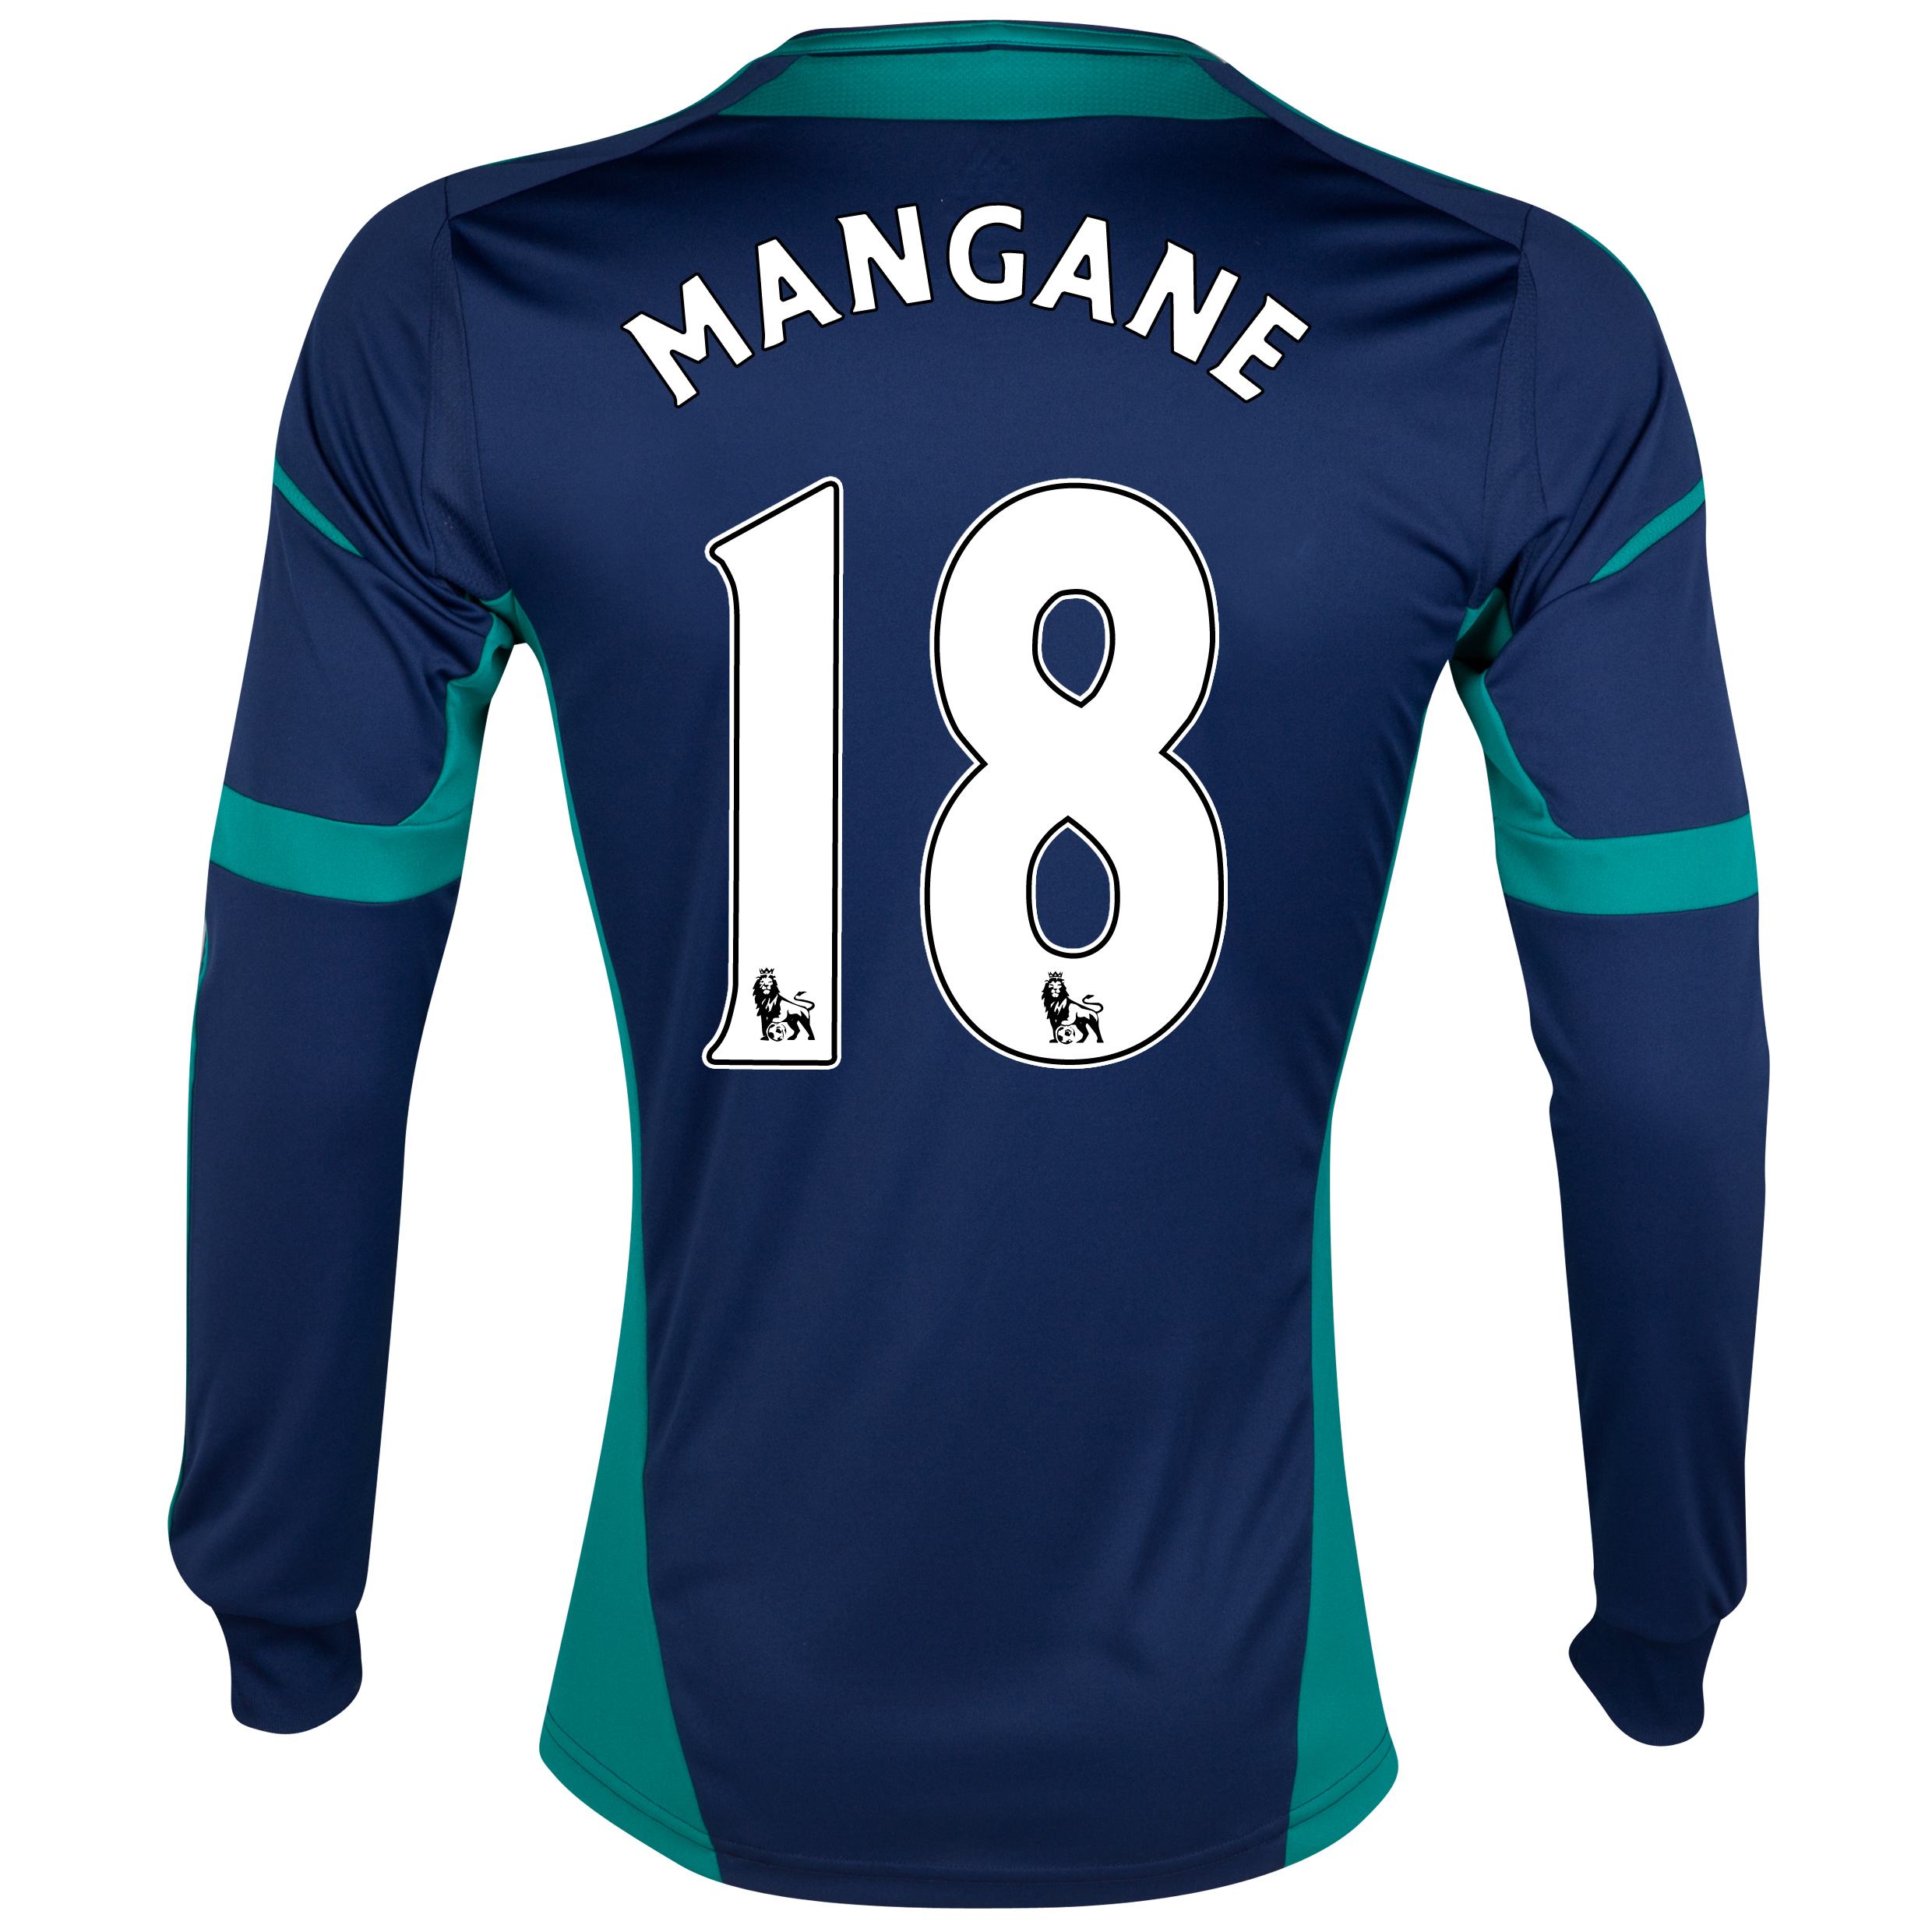 Sunderland Away Shirt 2012/13 - Long Sleeved - Junior with Mangane 18 printing